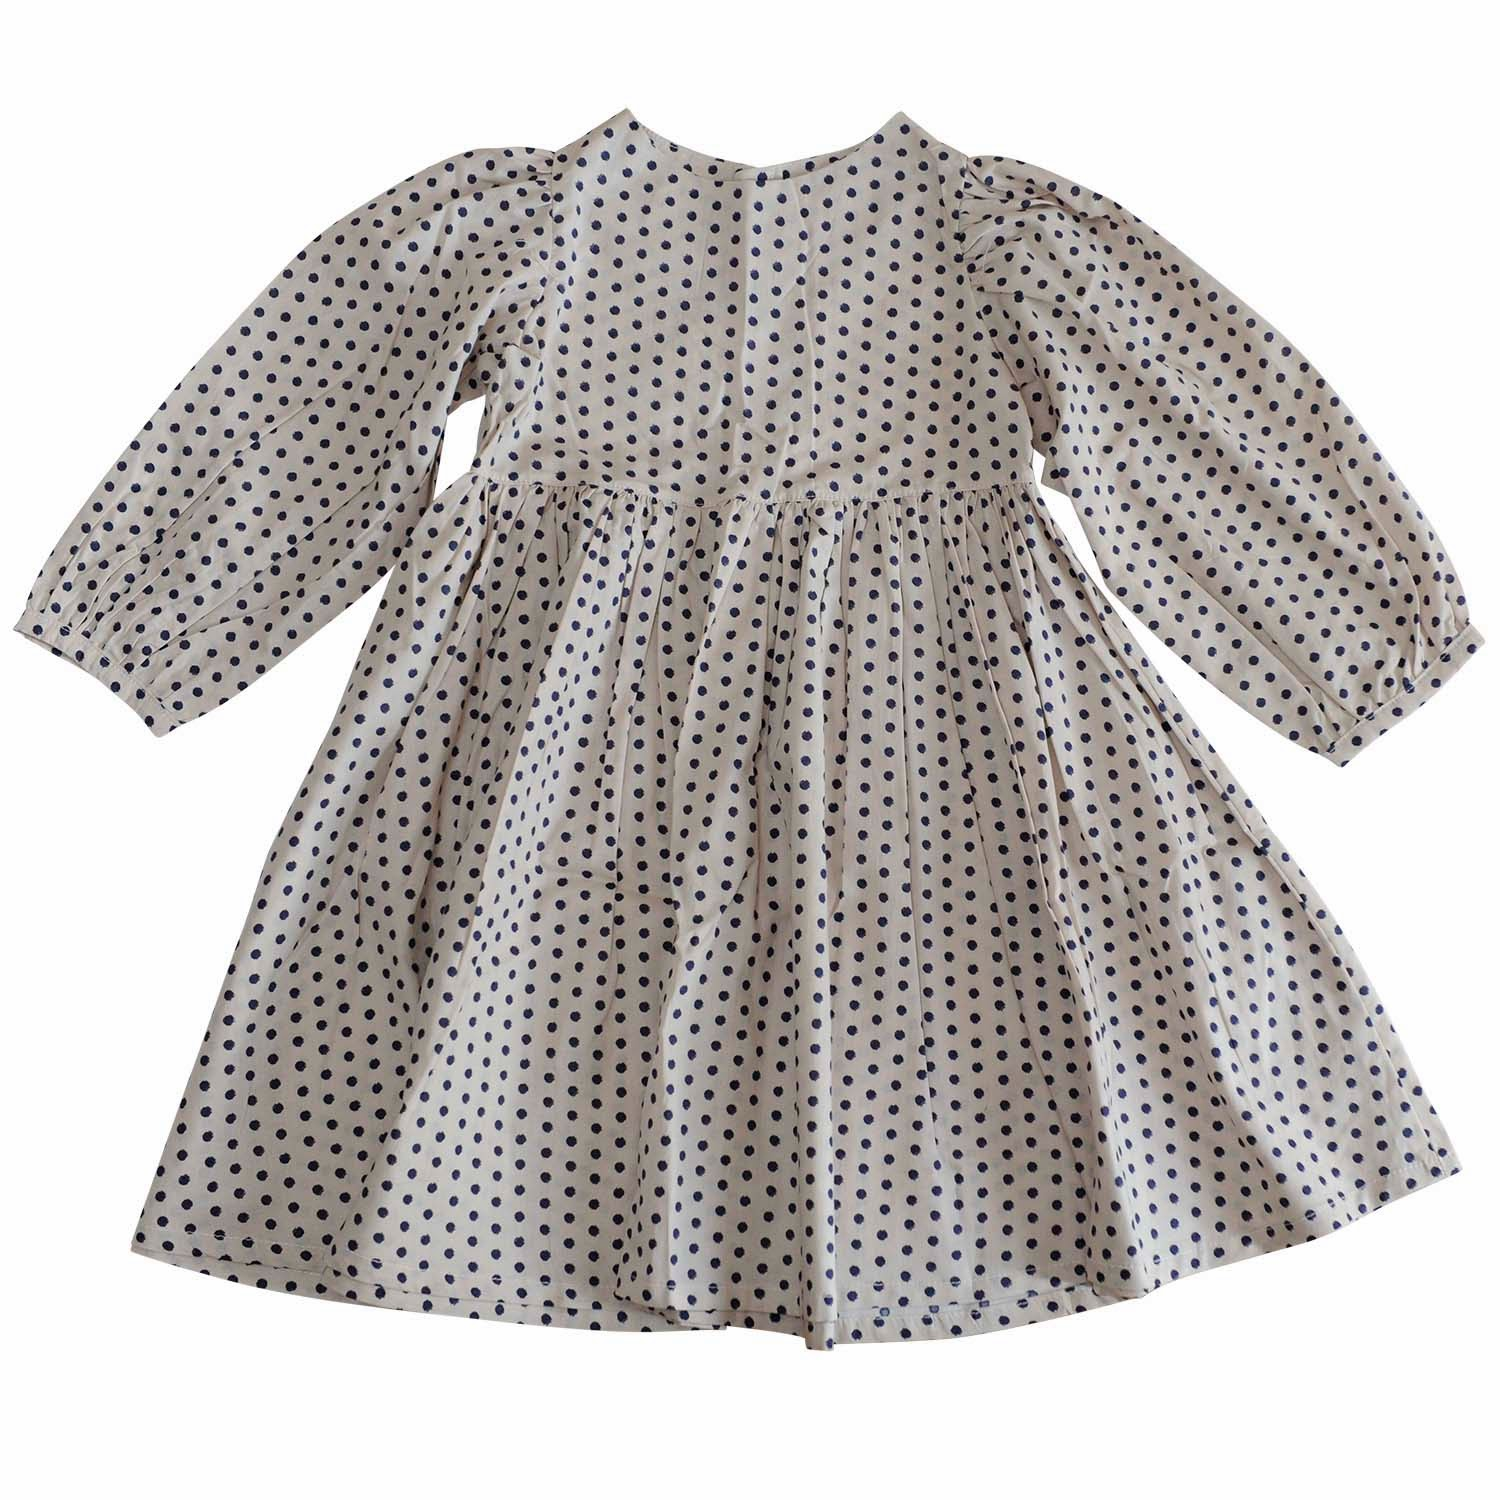 http://www.51starsparis.com/robes/57-robe-florence.html